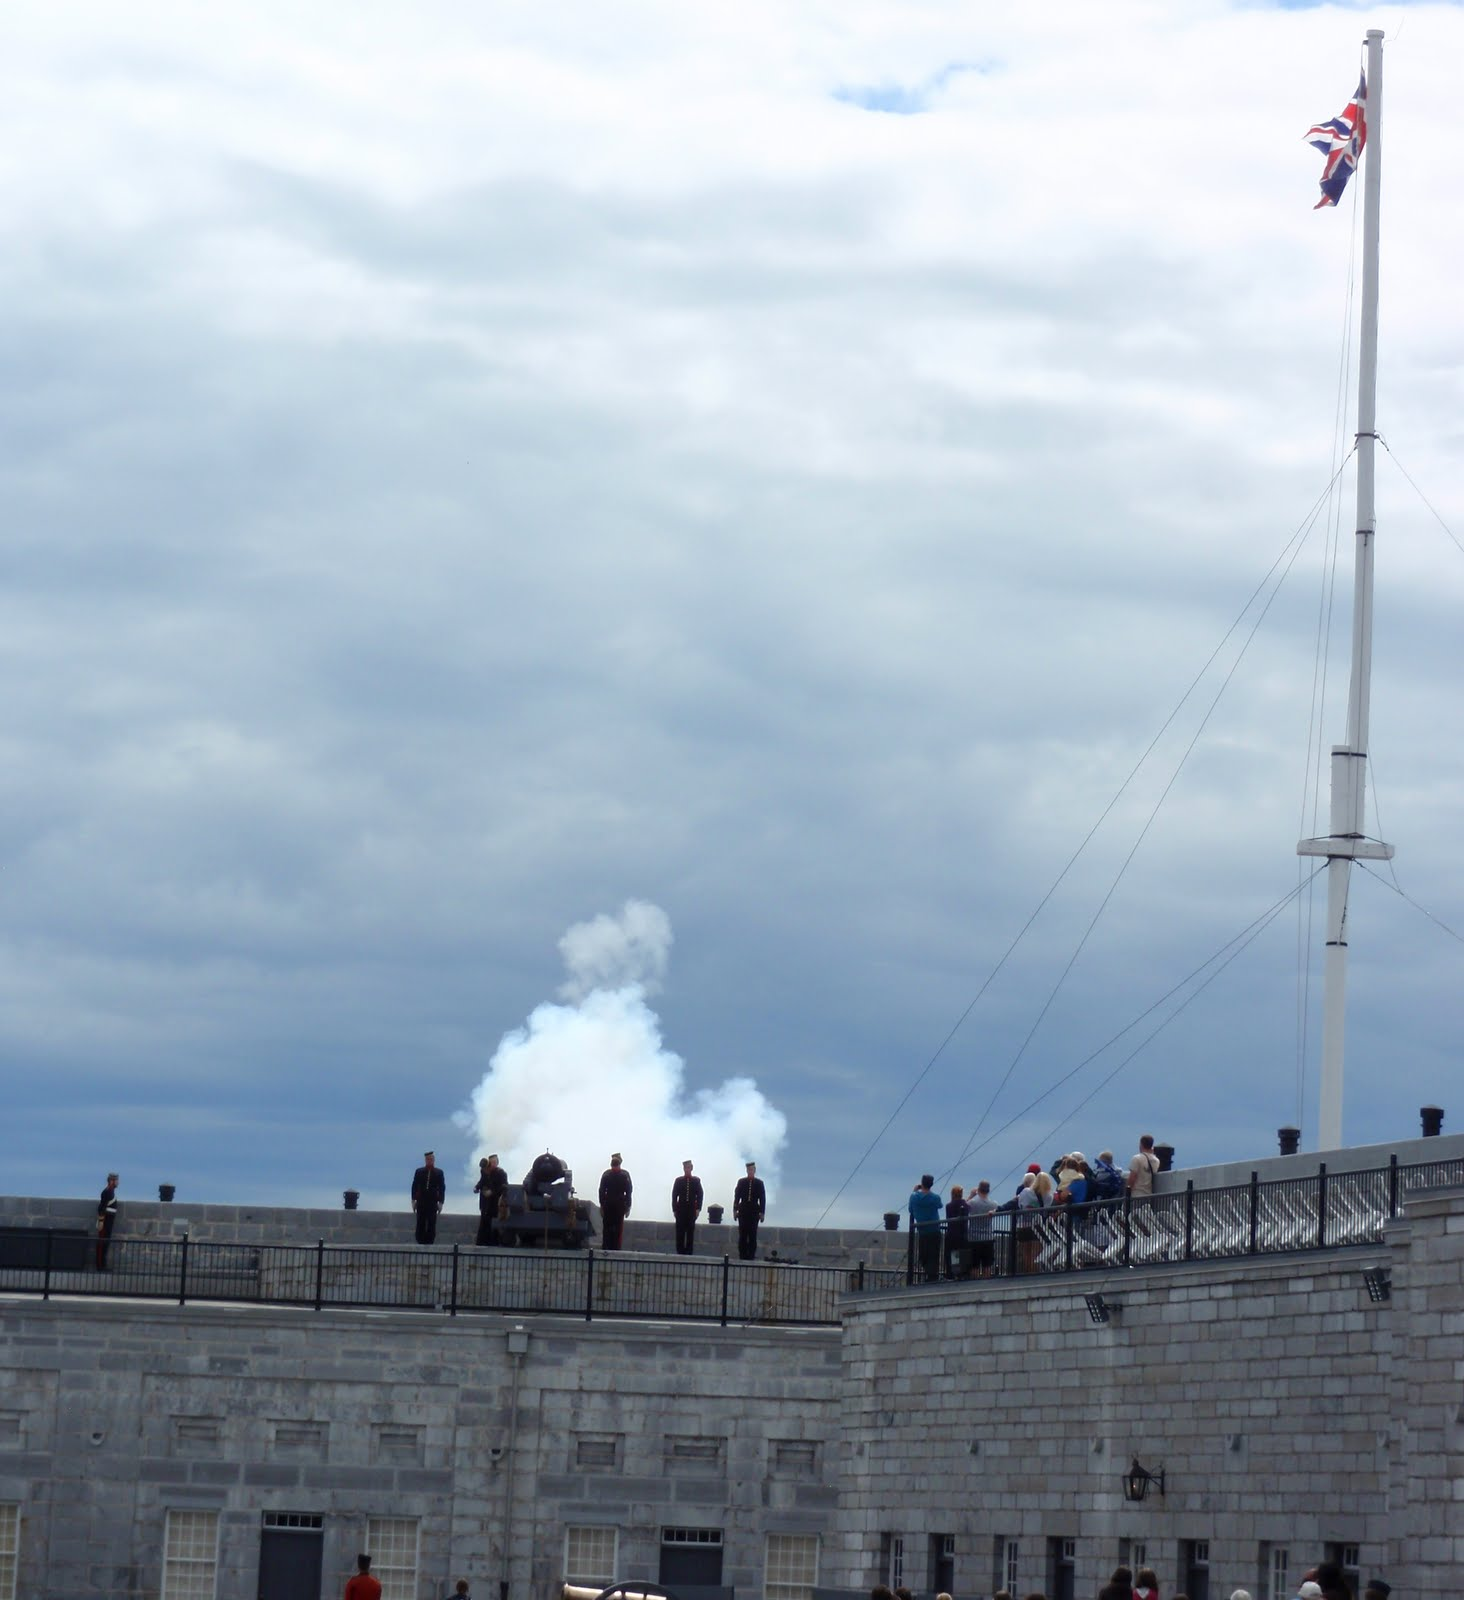 Firing of the canon